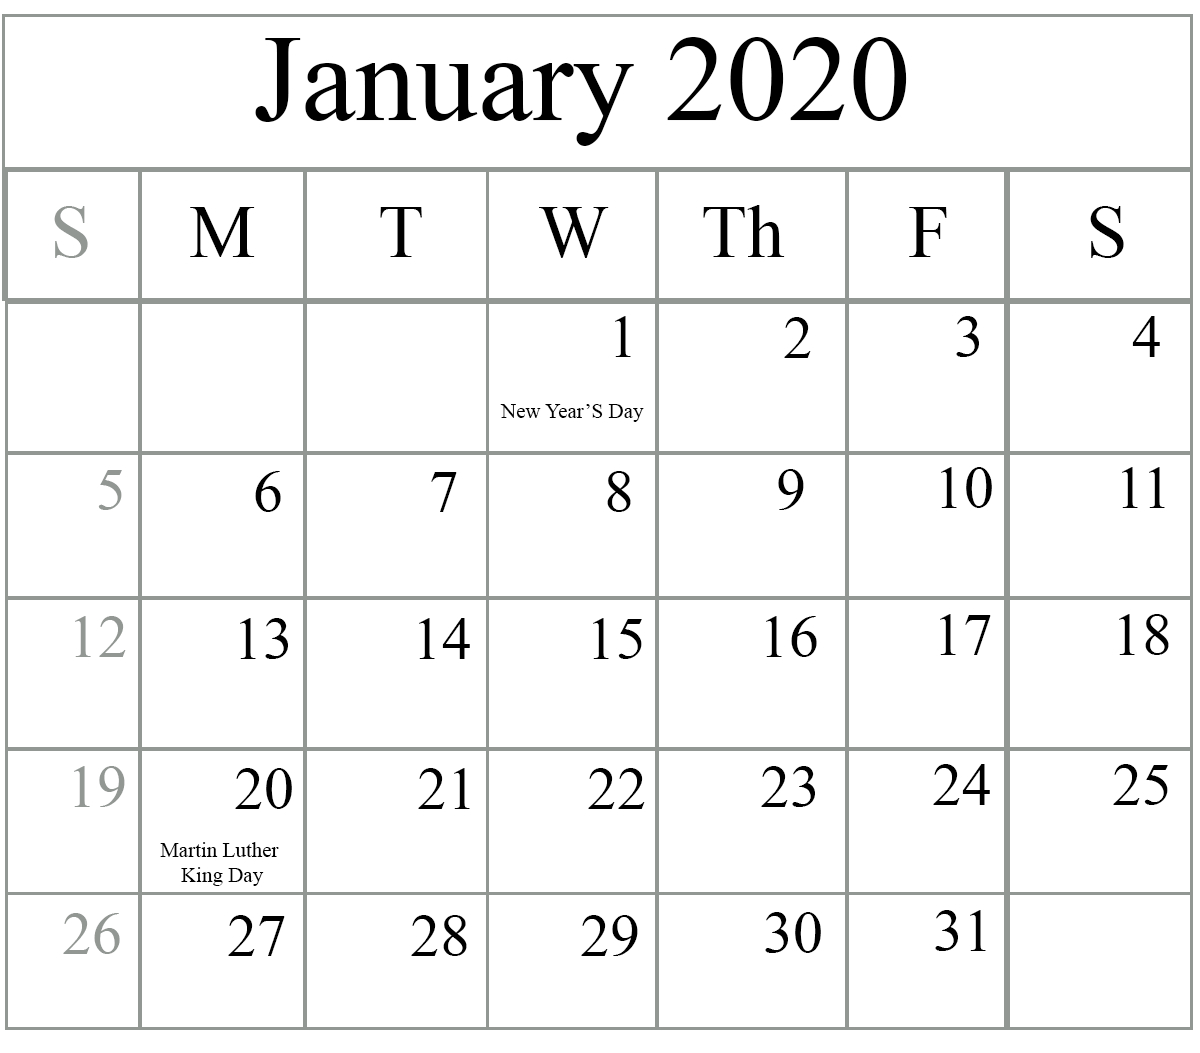 Free Blank January 2020 Calendar Printable In Pdf, Word